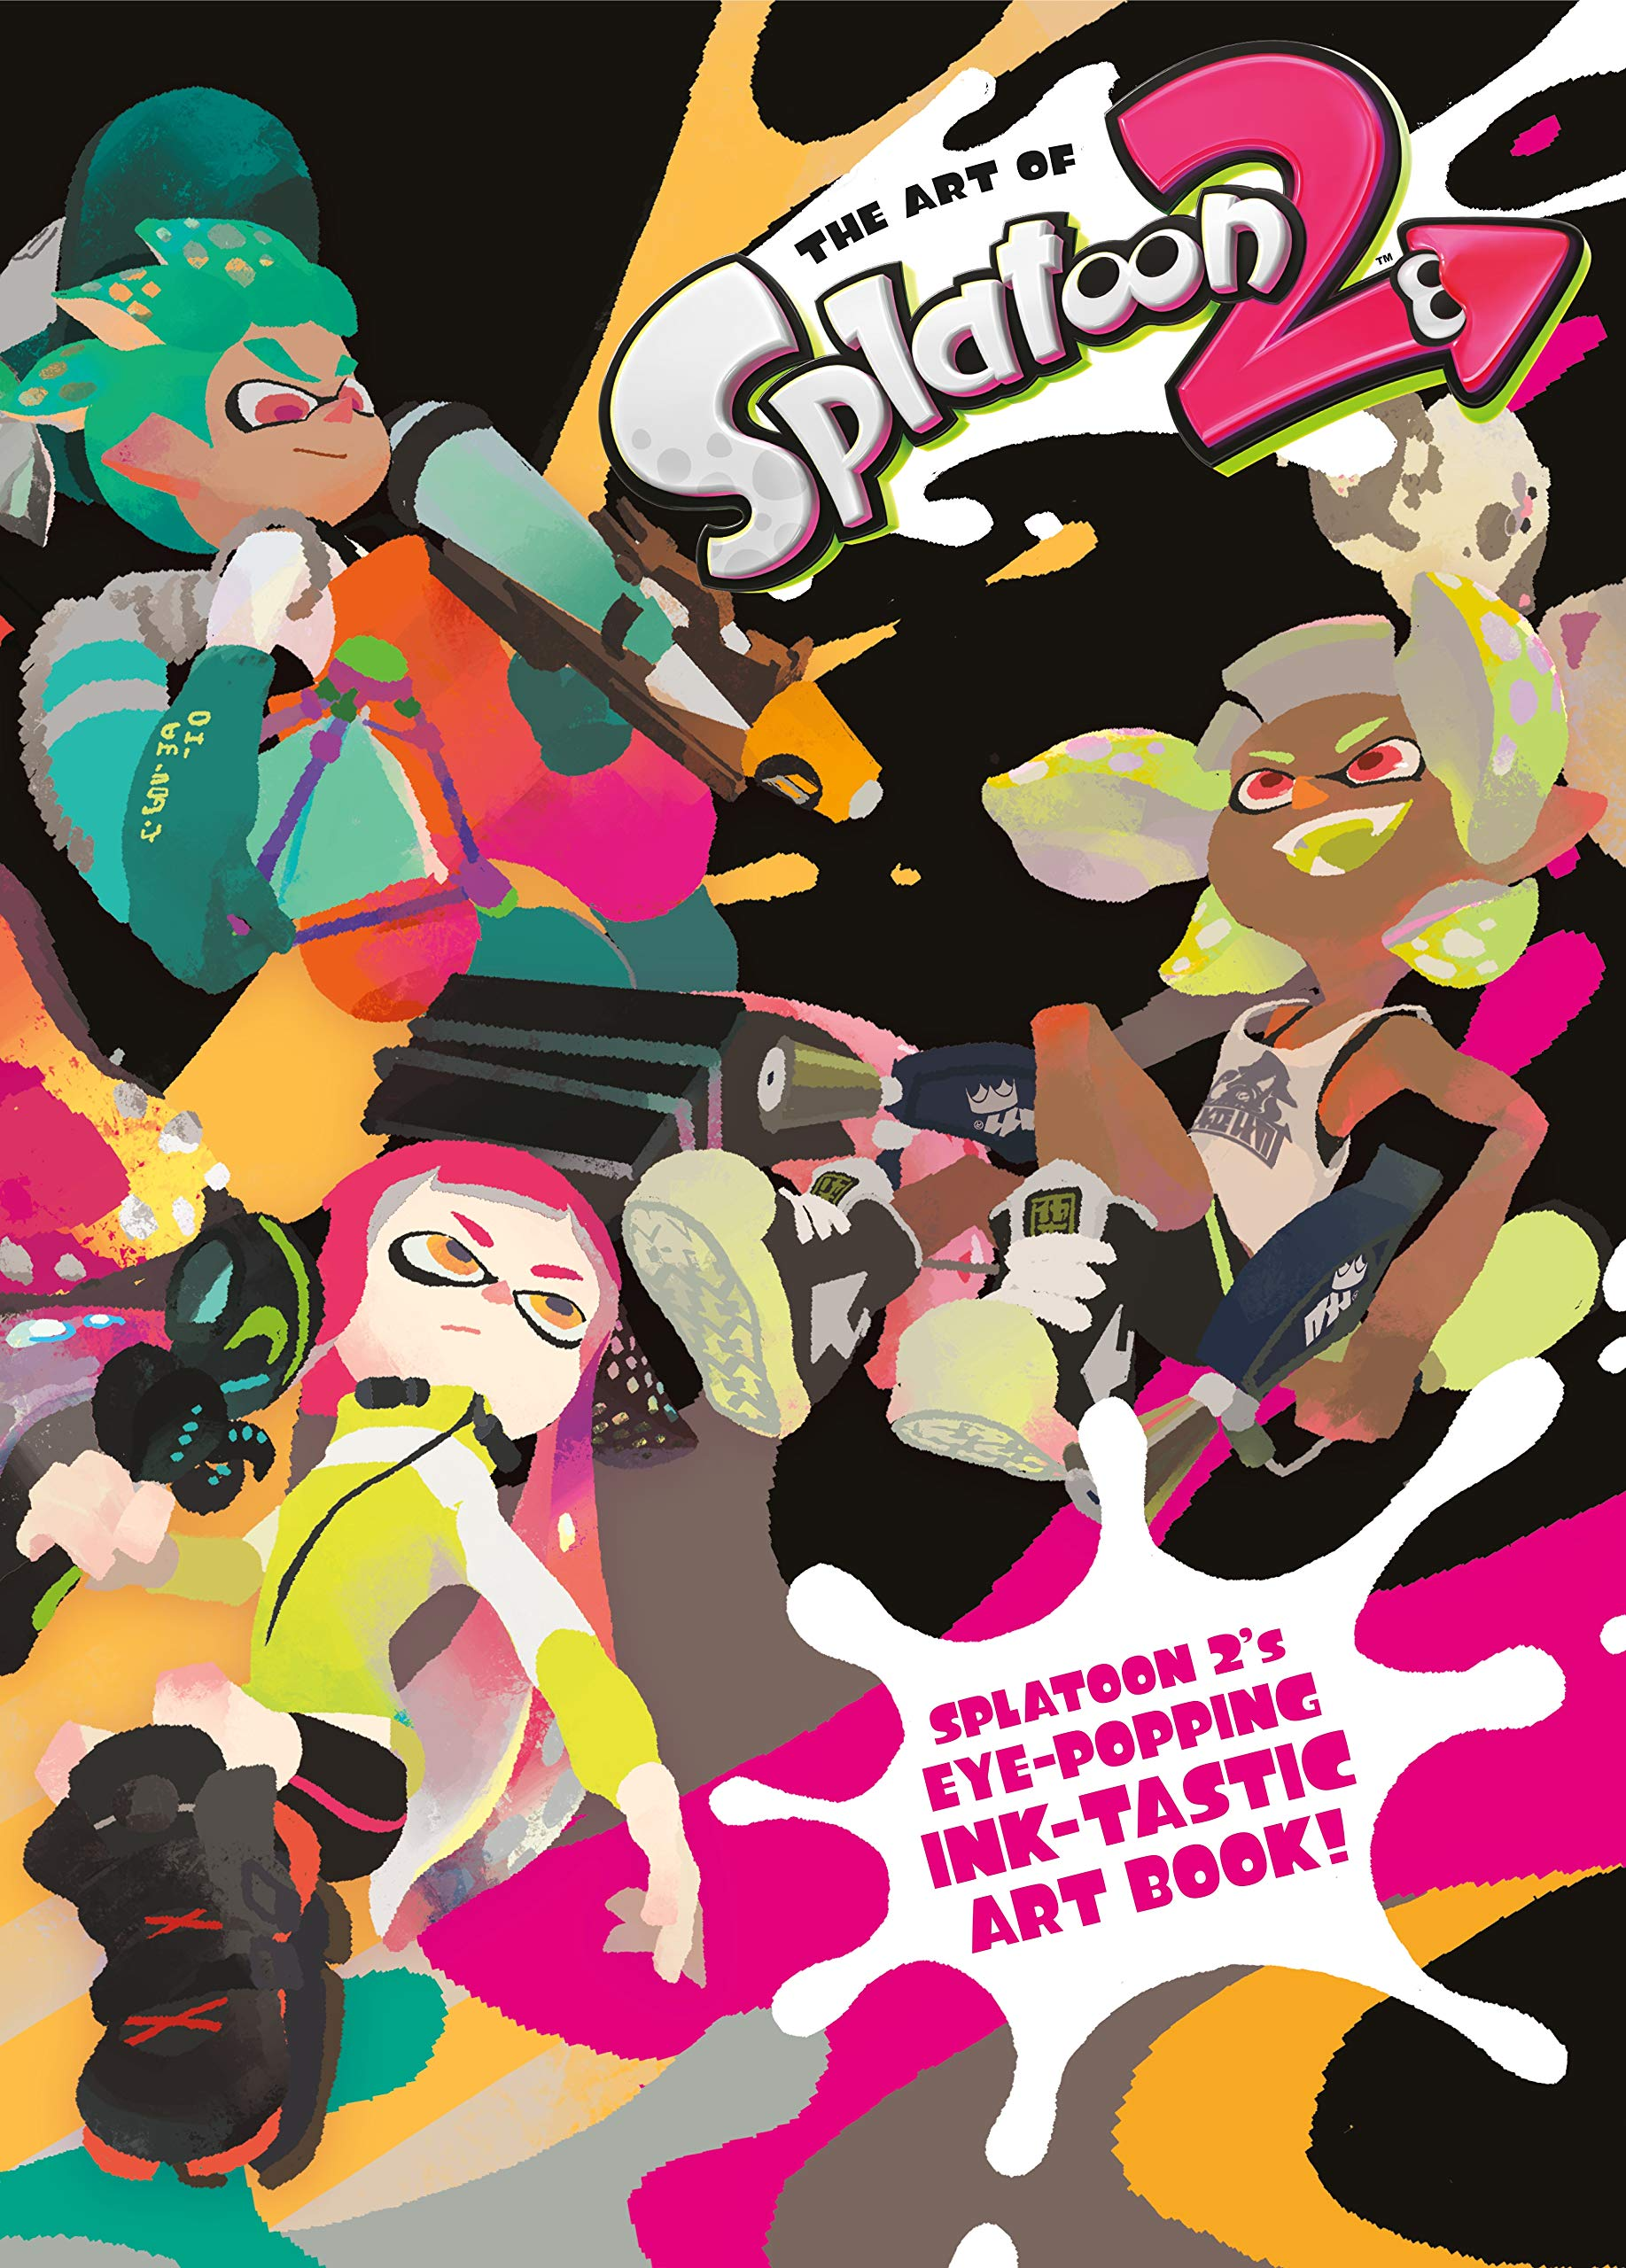 The Art of Splatoon 2: Amazon.es: Nintendo: Libros en idiomas extranjeros